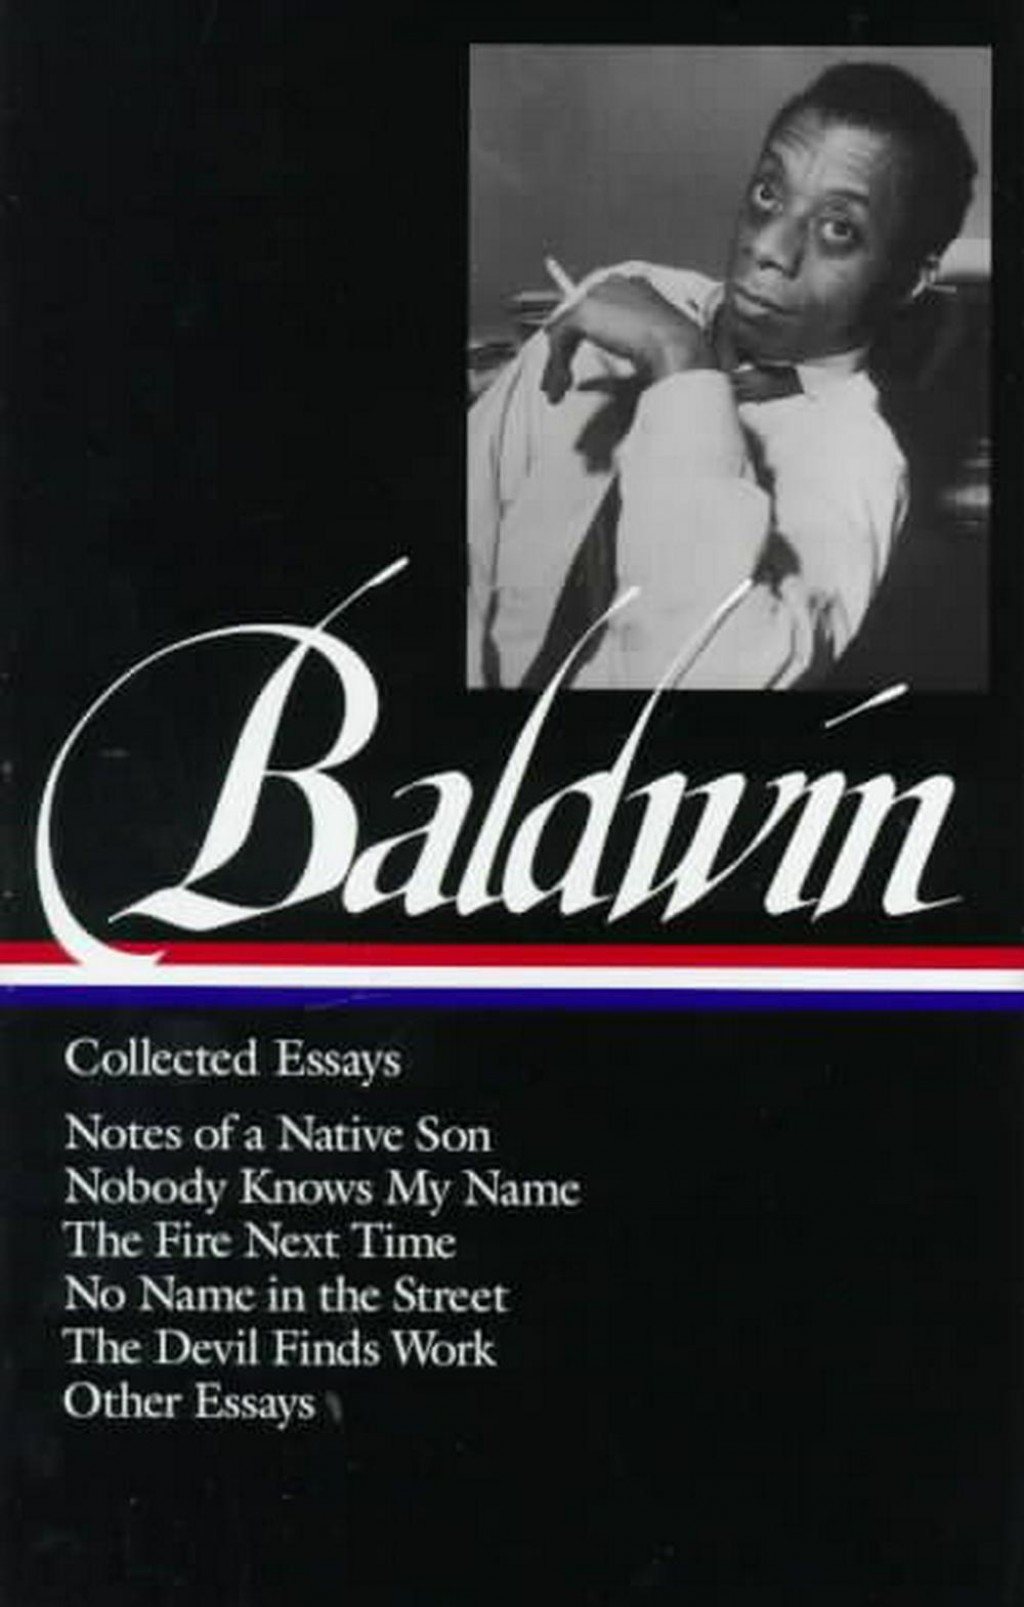 007 James Baldwin Collected Essays 9781883011529r5c3810cfda494 Essay Wondrous Google Books Pdf Table Of Contents Large